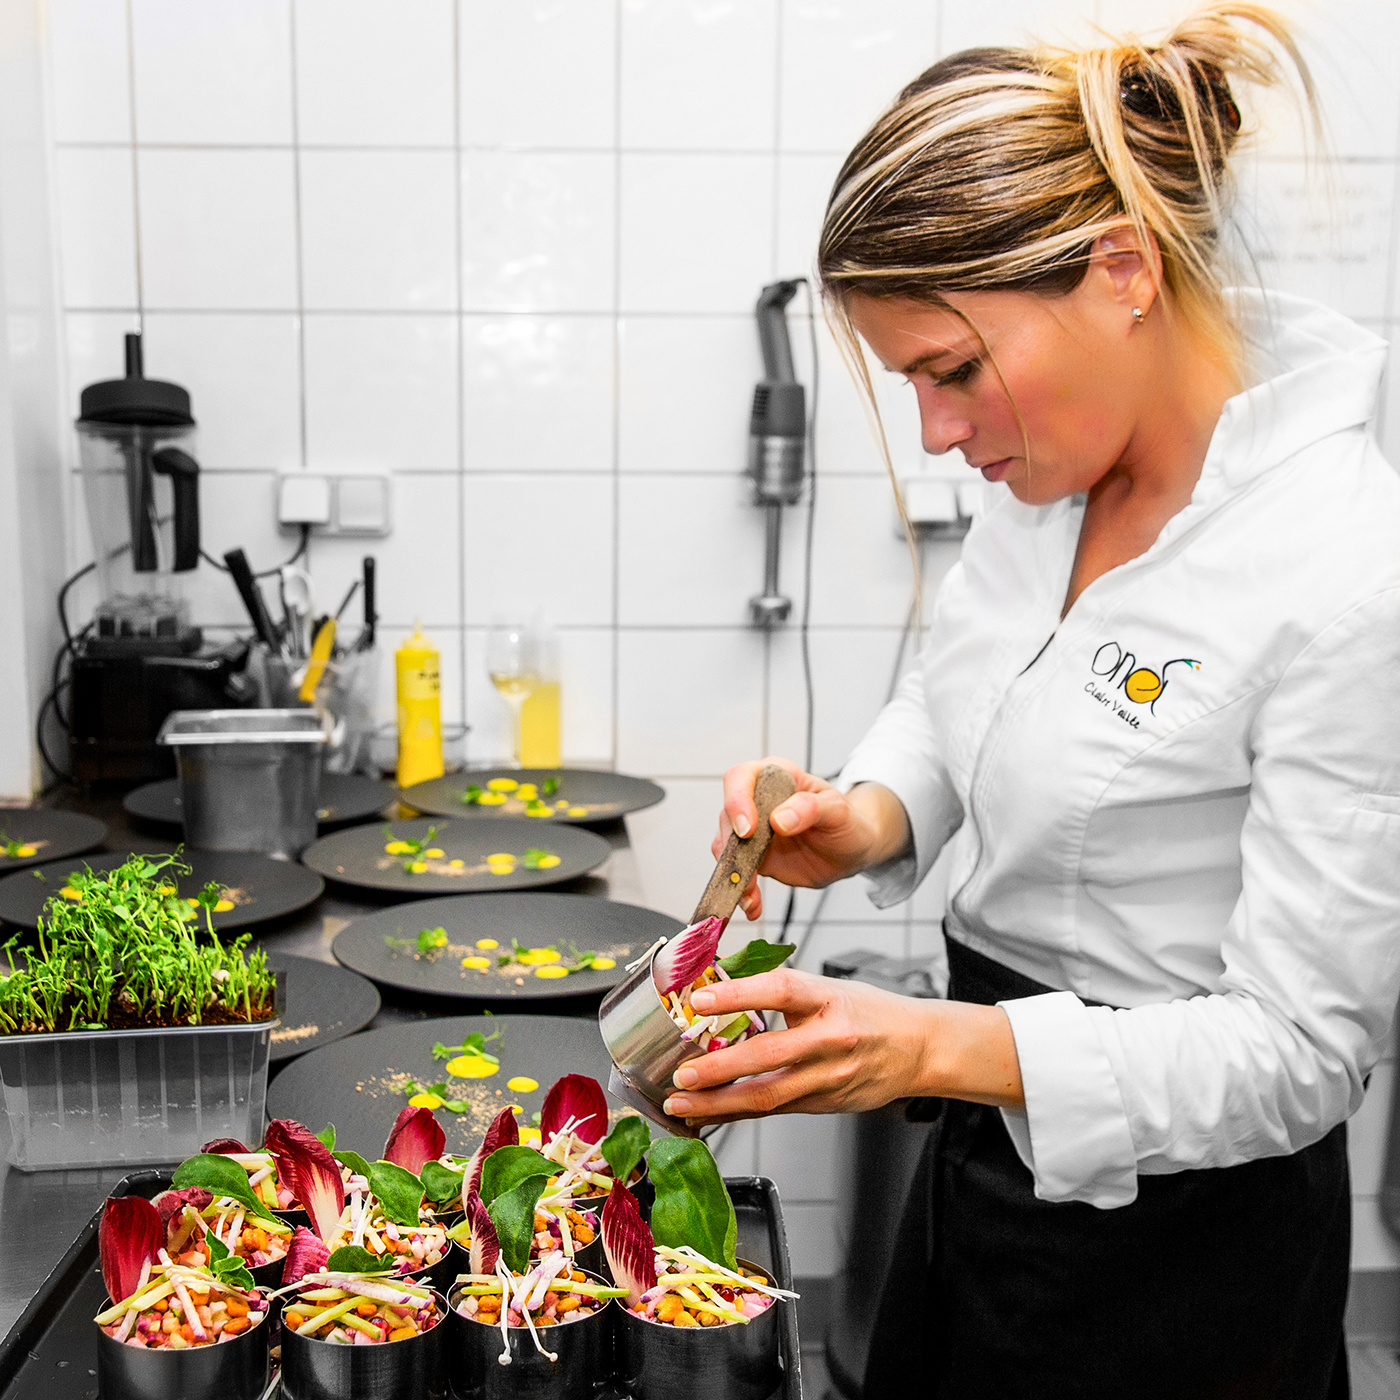 CHEF VEGAN CLAIRE VALLEE / RESTAURANT ONA